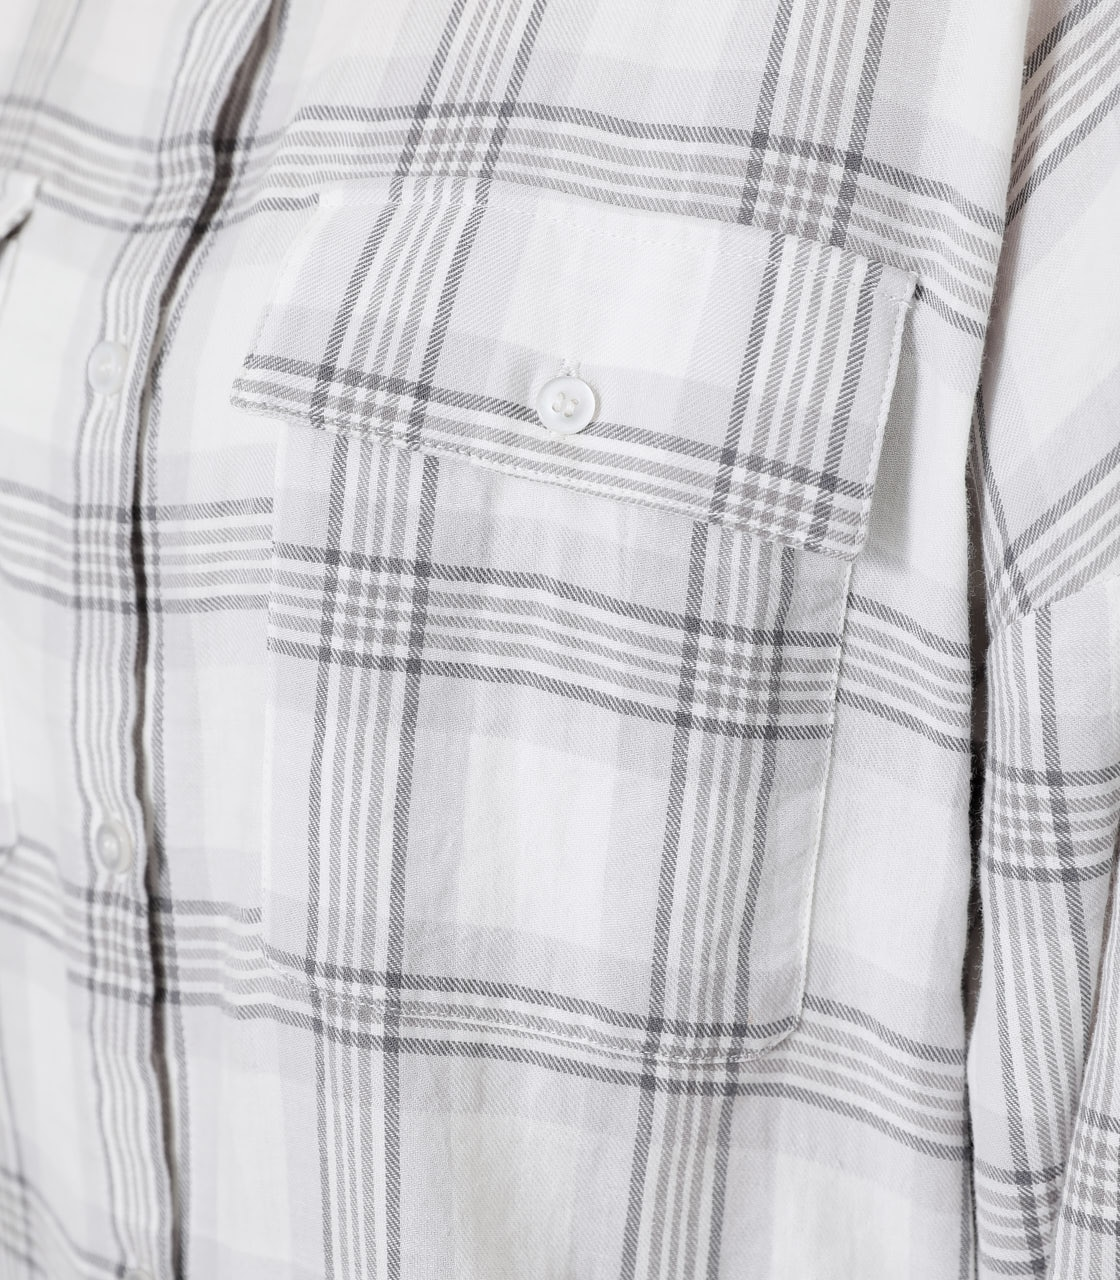 CHECK LOOSE SHIRT/チェックルーズシャツ 詳細画像 柄WHT 8